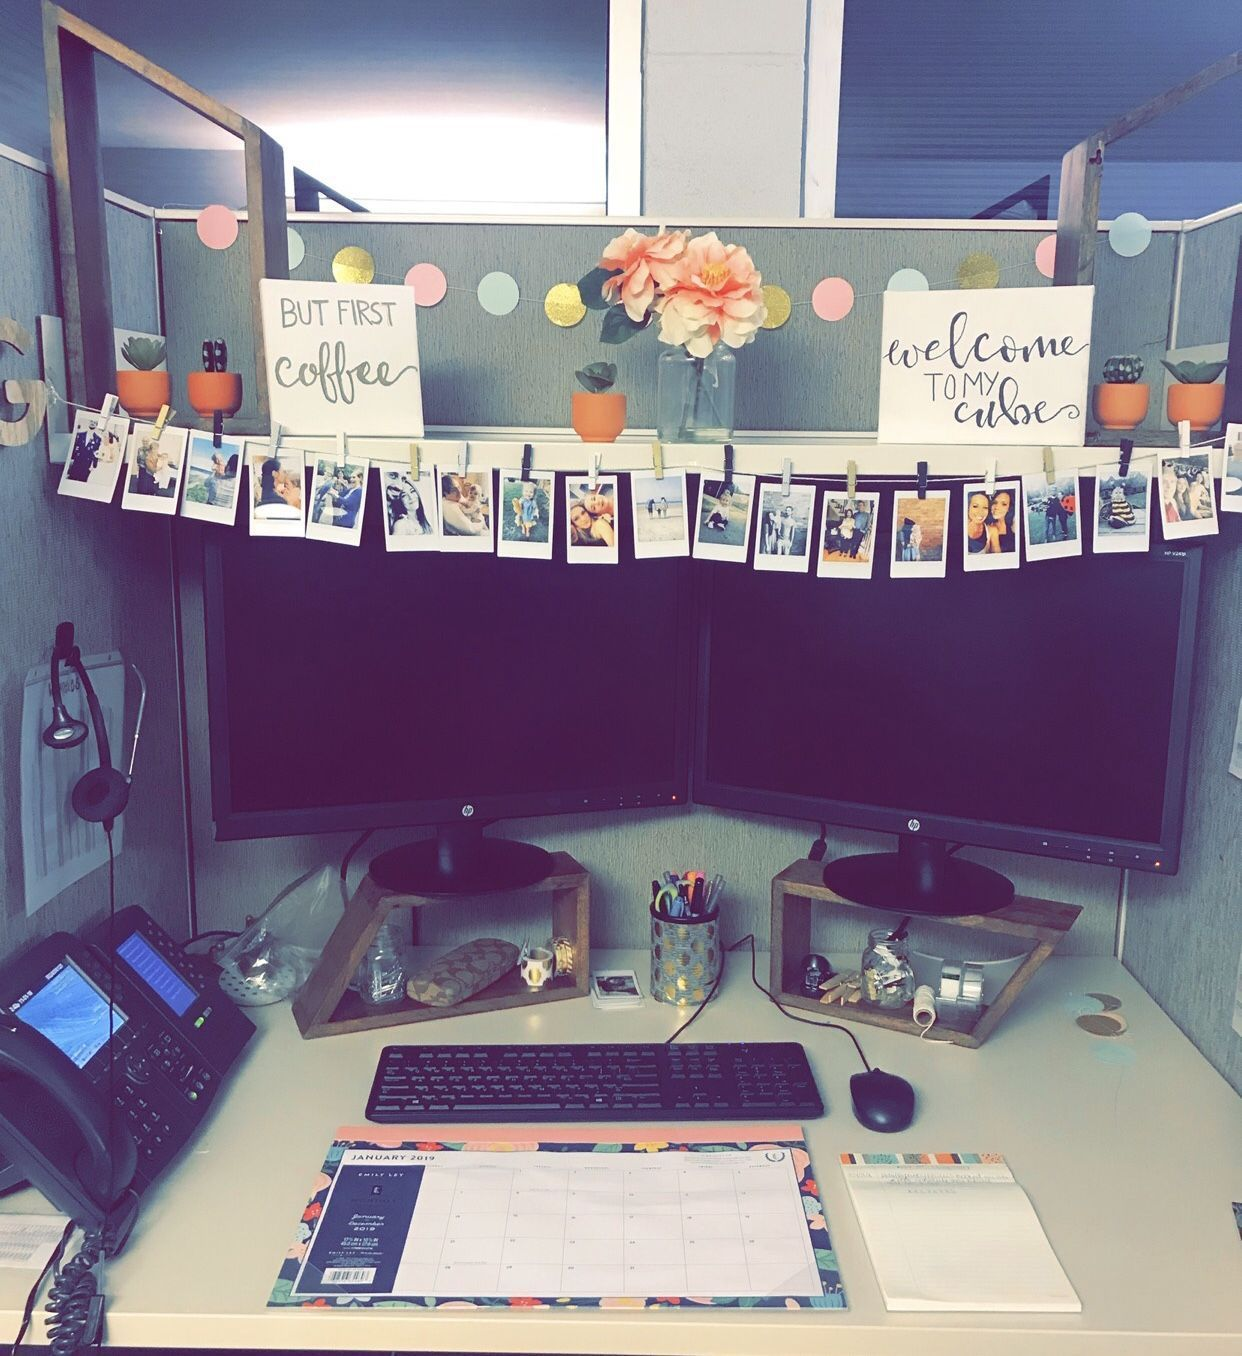 51 Diy Cubicle Decor Ideas For Better Working Space Furniture